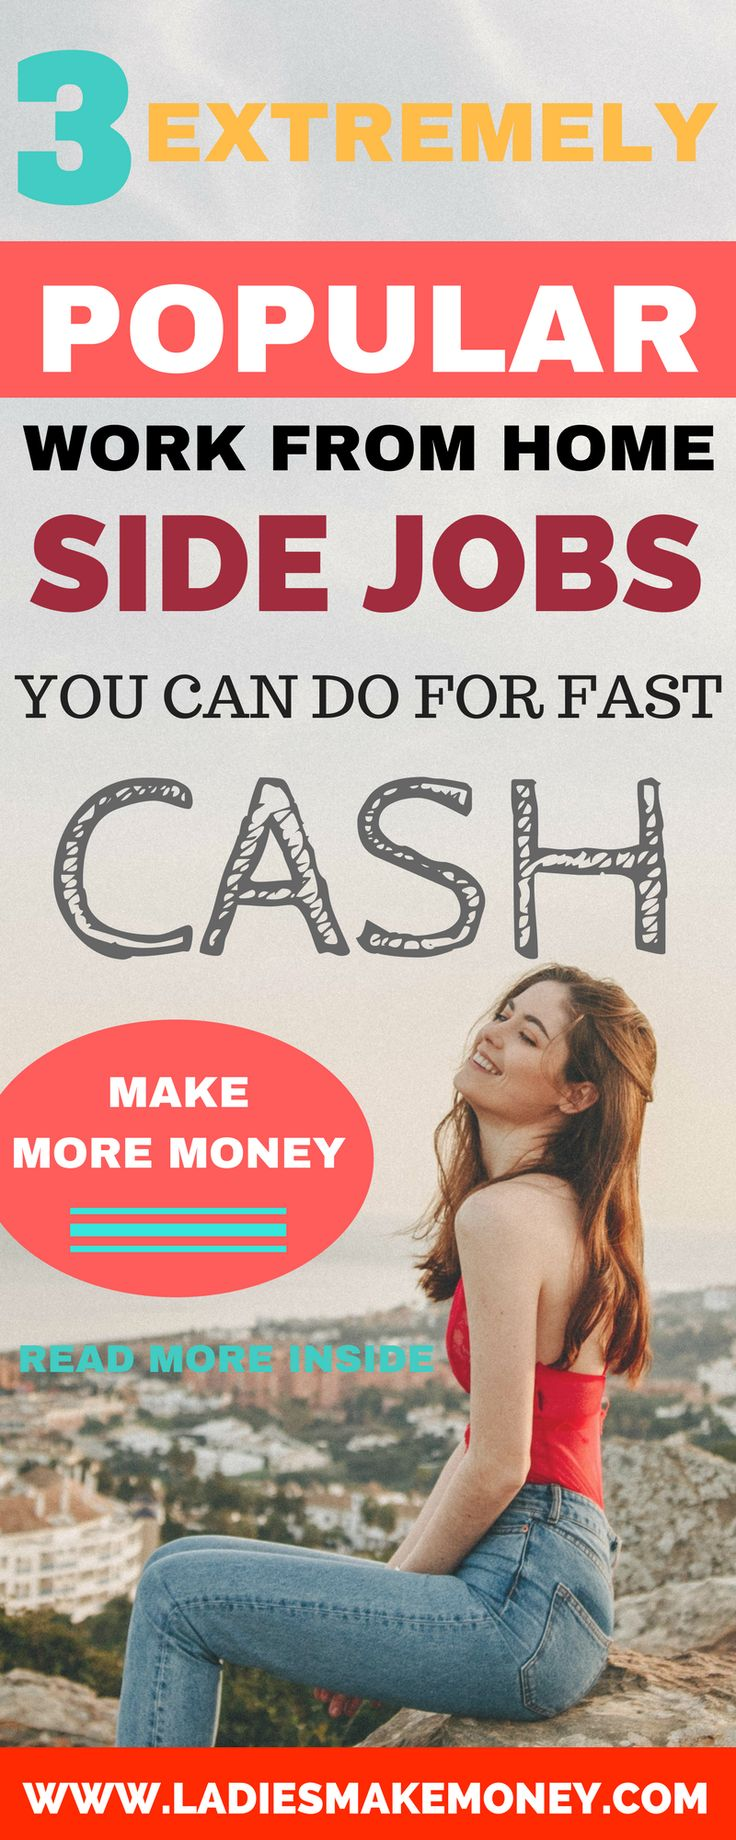 3 Extremely Popular Work from Home Side Jobs you can do for Fast Cash – sharon honman